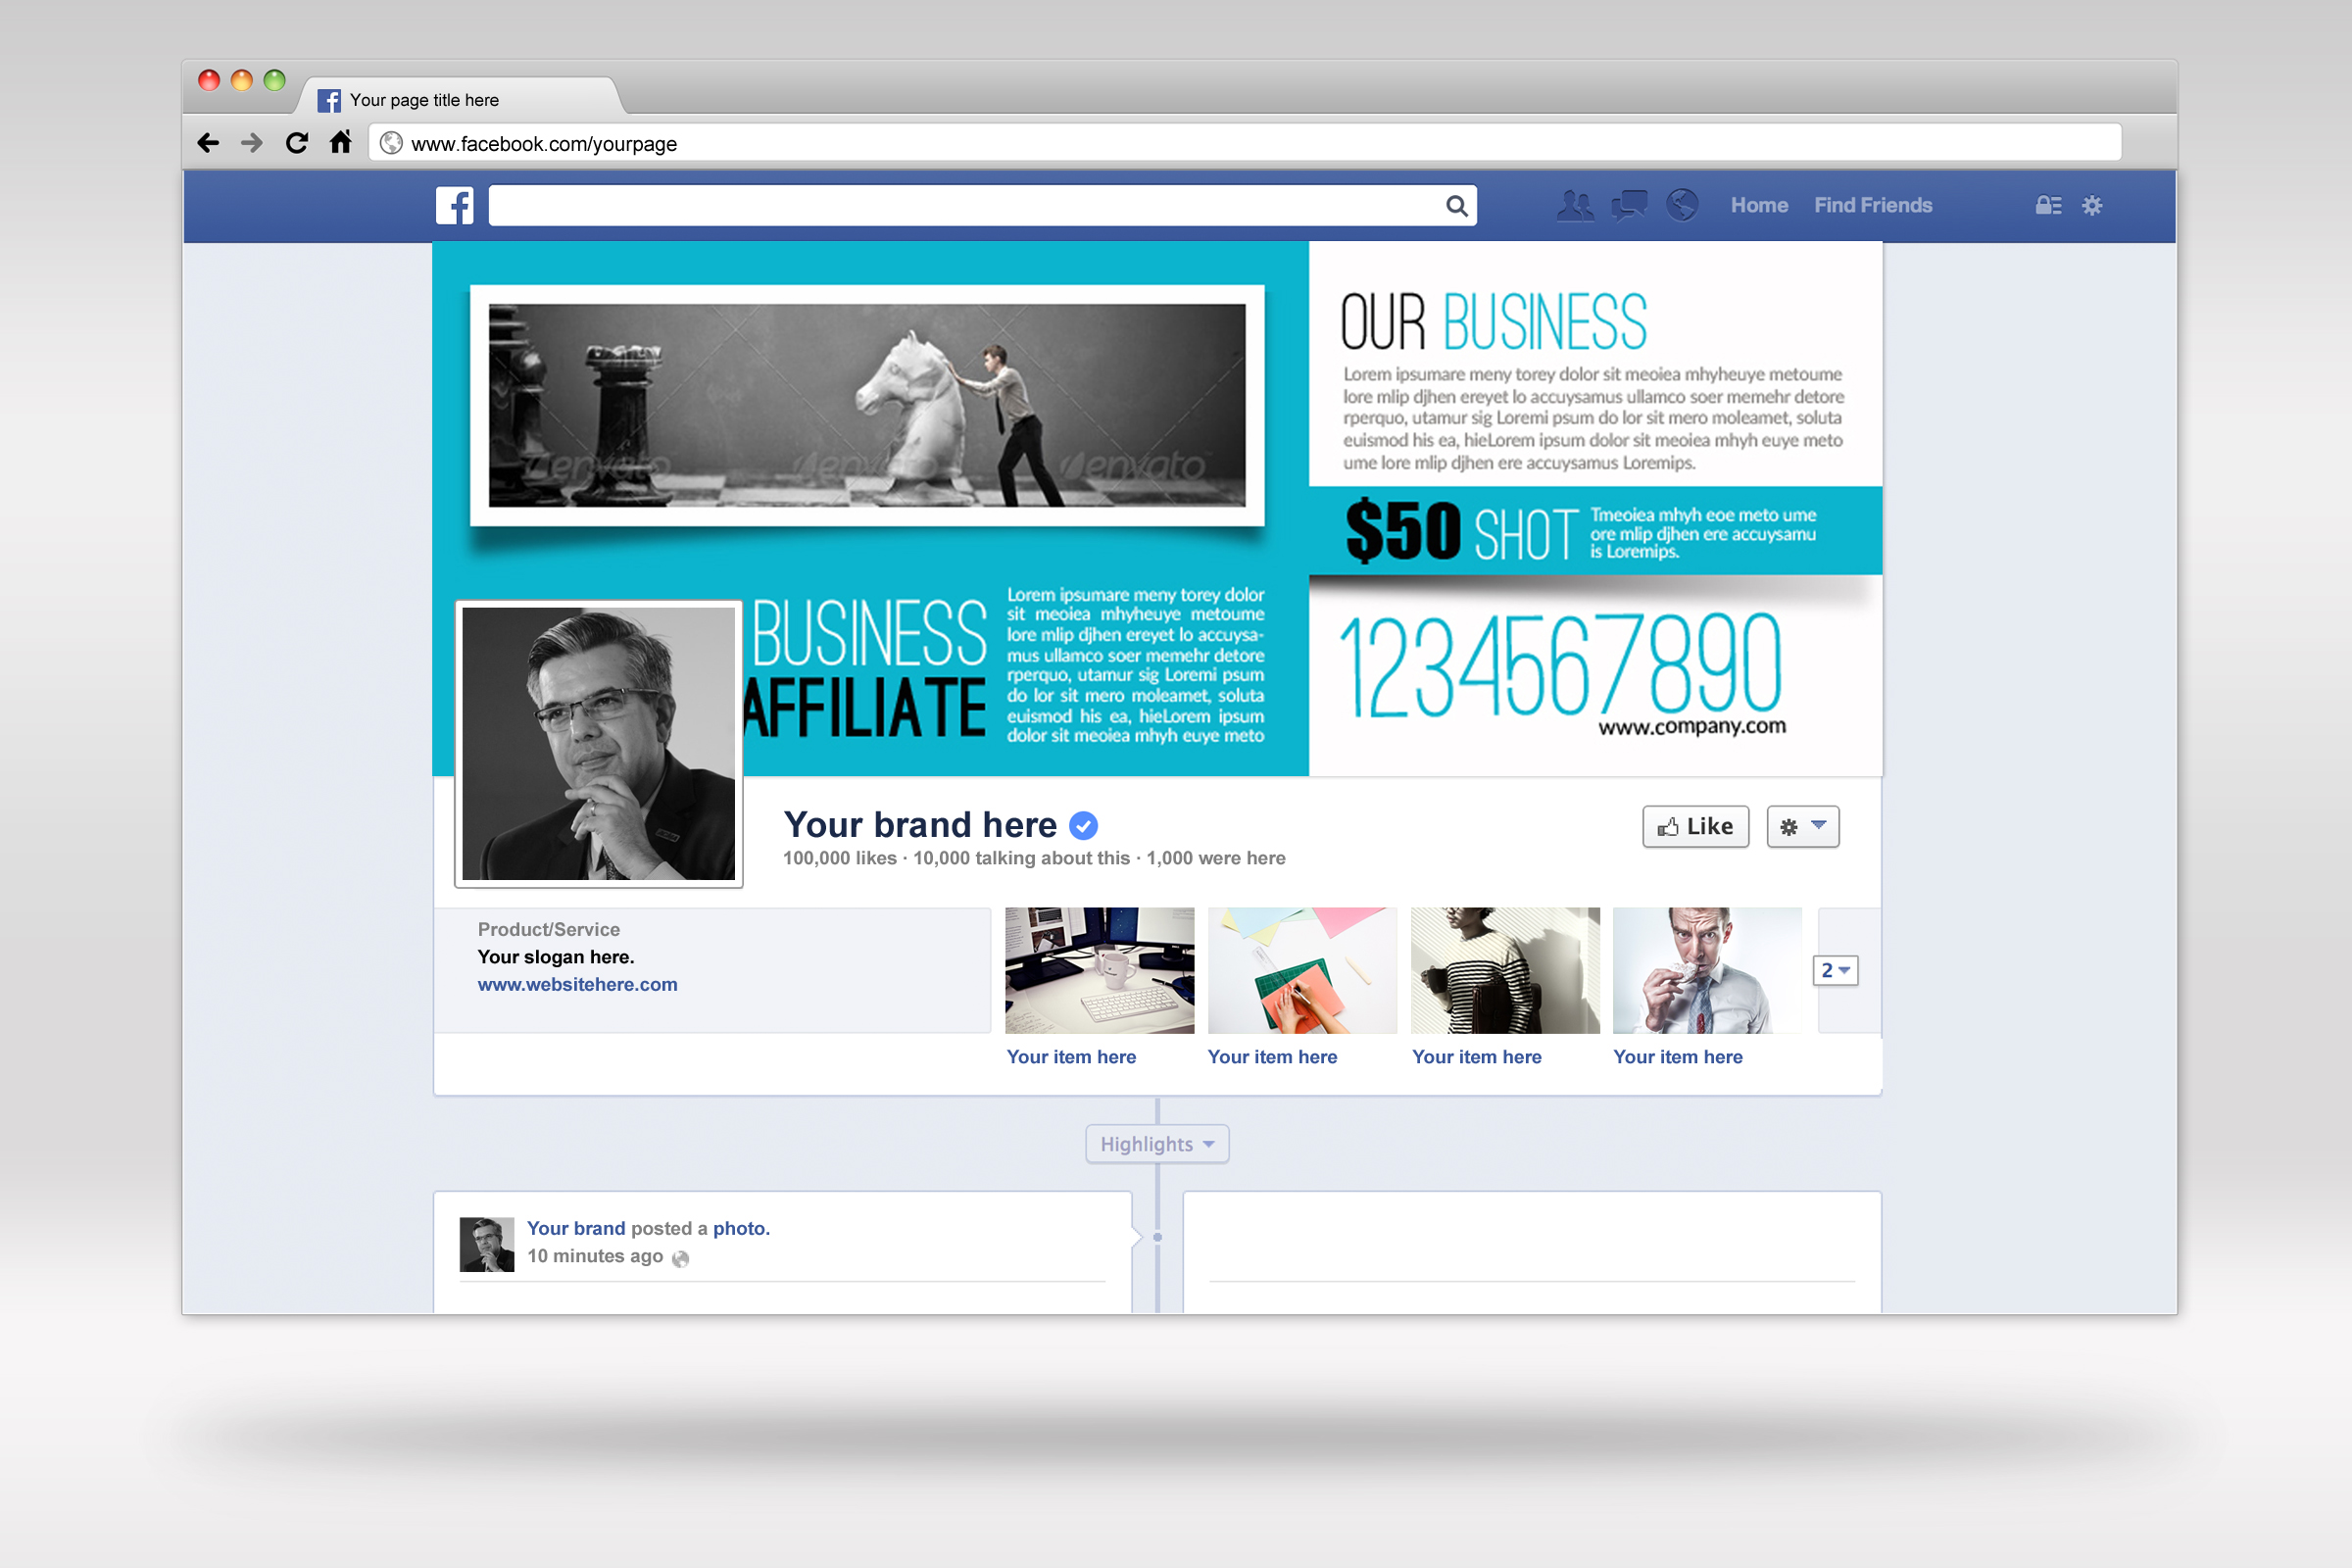 Business Innovation Facebook Timeline example image 2